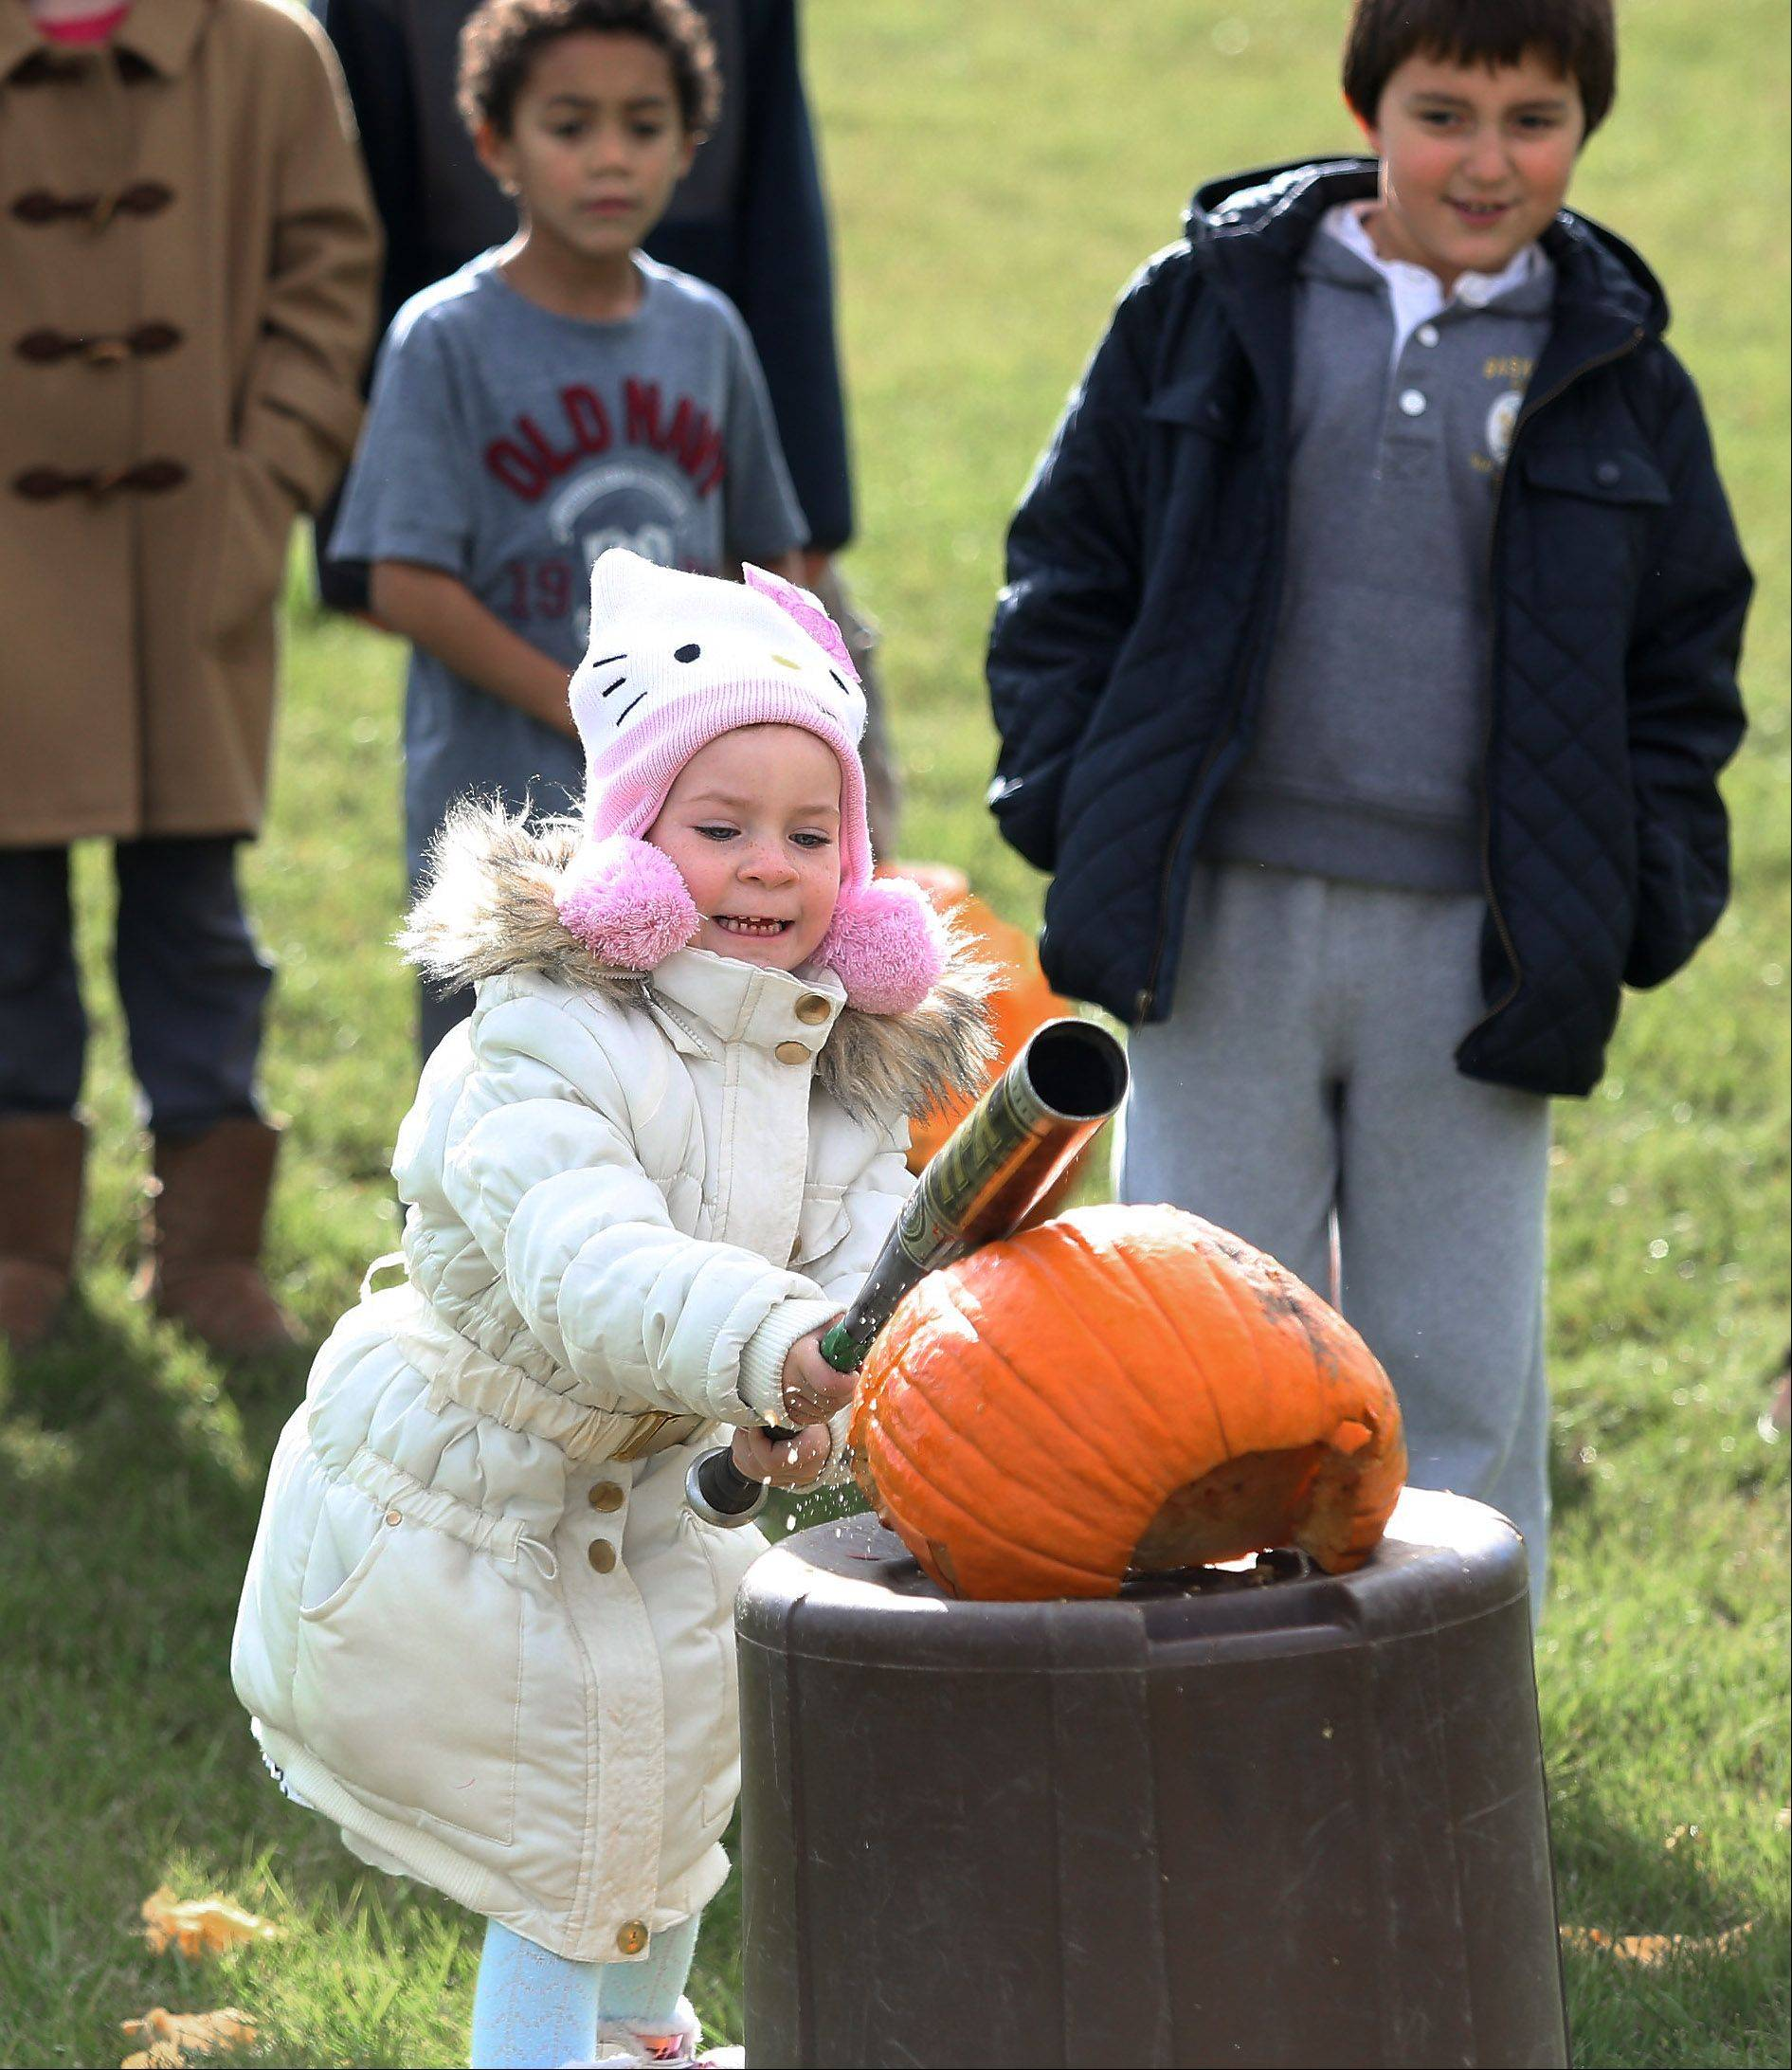 Five-year-old Elsa Heyer bashes a pumpkin with a bat Sunday during Mundelein's 6th annual Pumpkin Drop at Keith Mione Community Park. Families brought their Halloween pumpkins to the event where they were bashed, rolled and flung with a catapult.